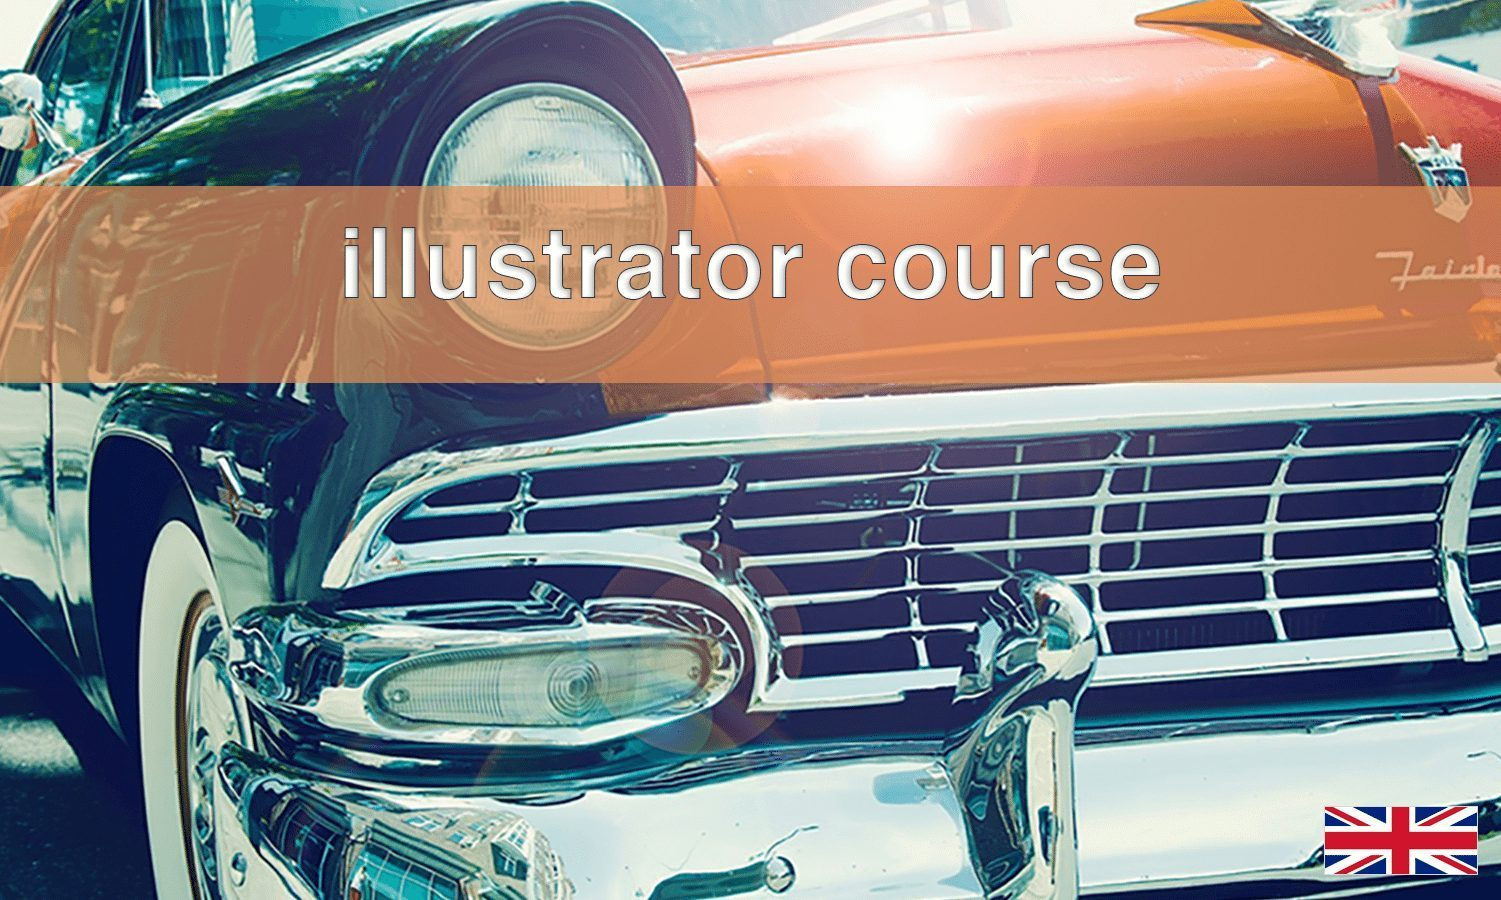 illustrator course in English in The Hague, The Netherlands